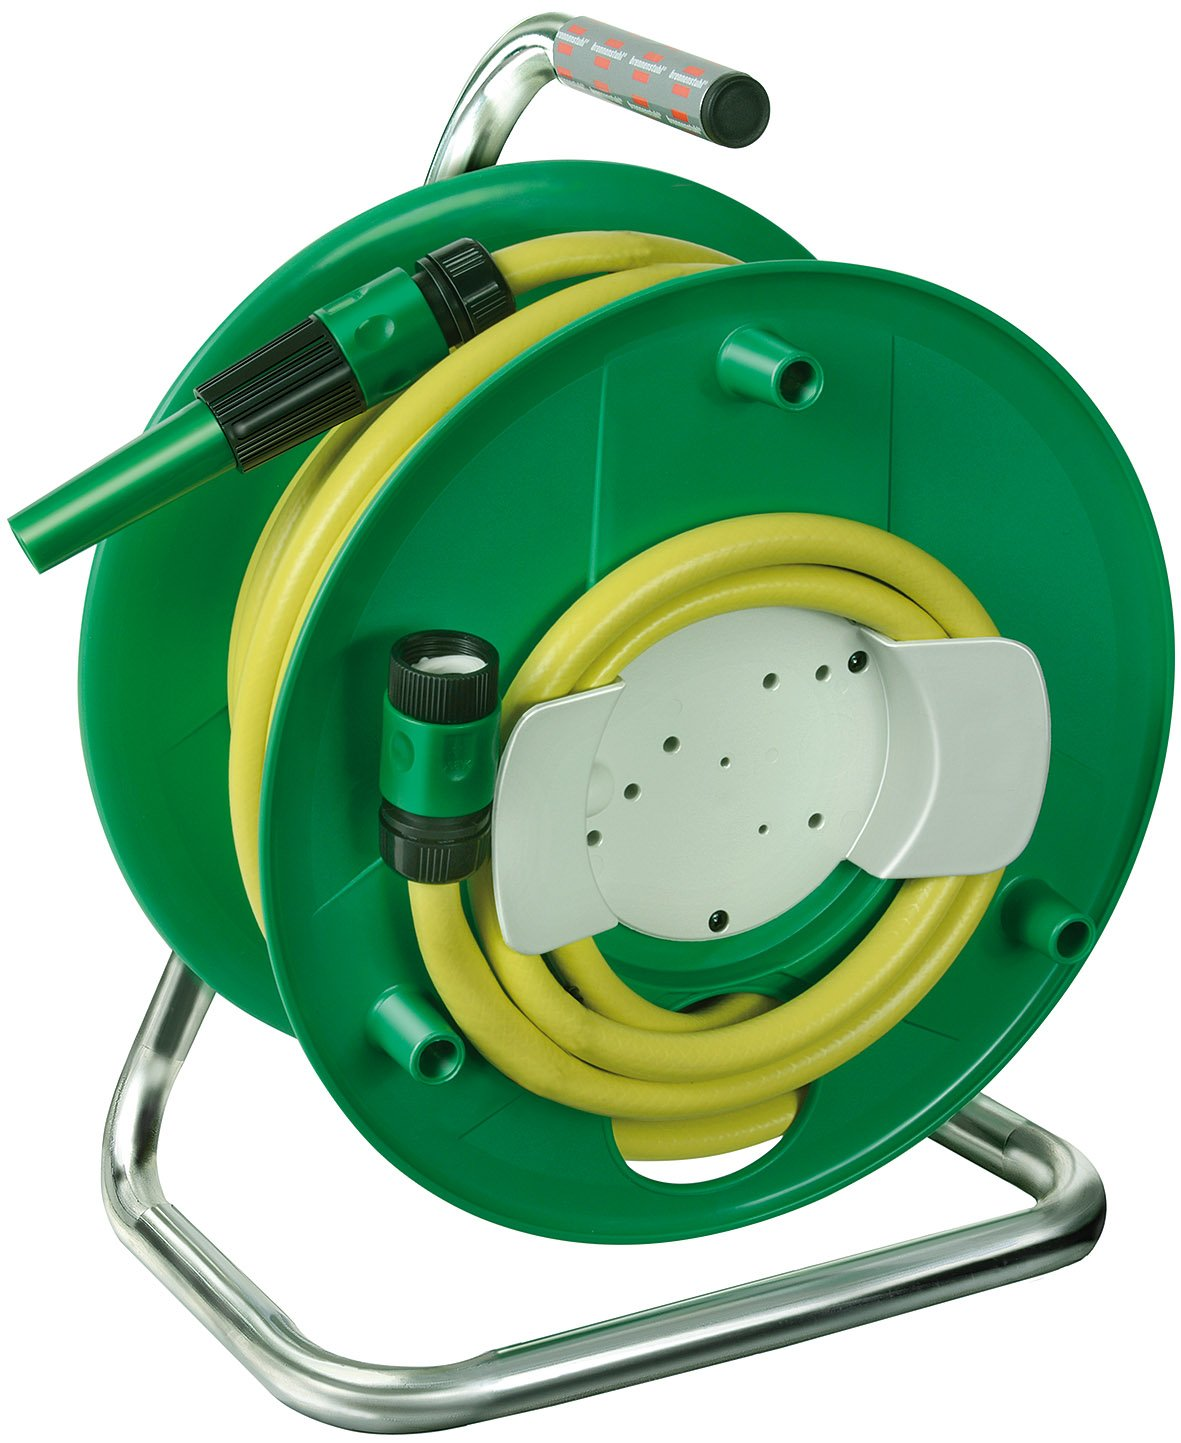 Brennenstuhl hose reel with 20m water hose (spraying nozzle, waterstop, top connector), portable water hose reel for outdoors, hose colour: yellow 1237120